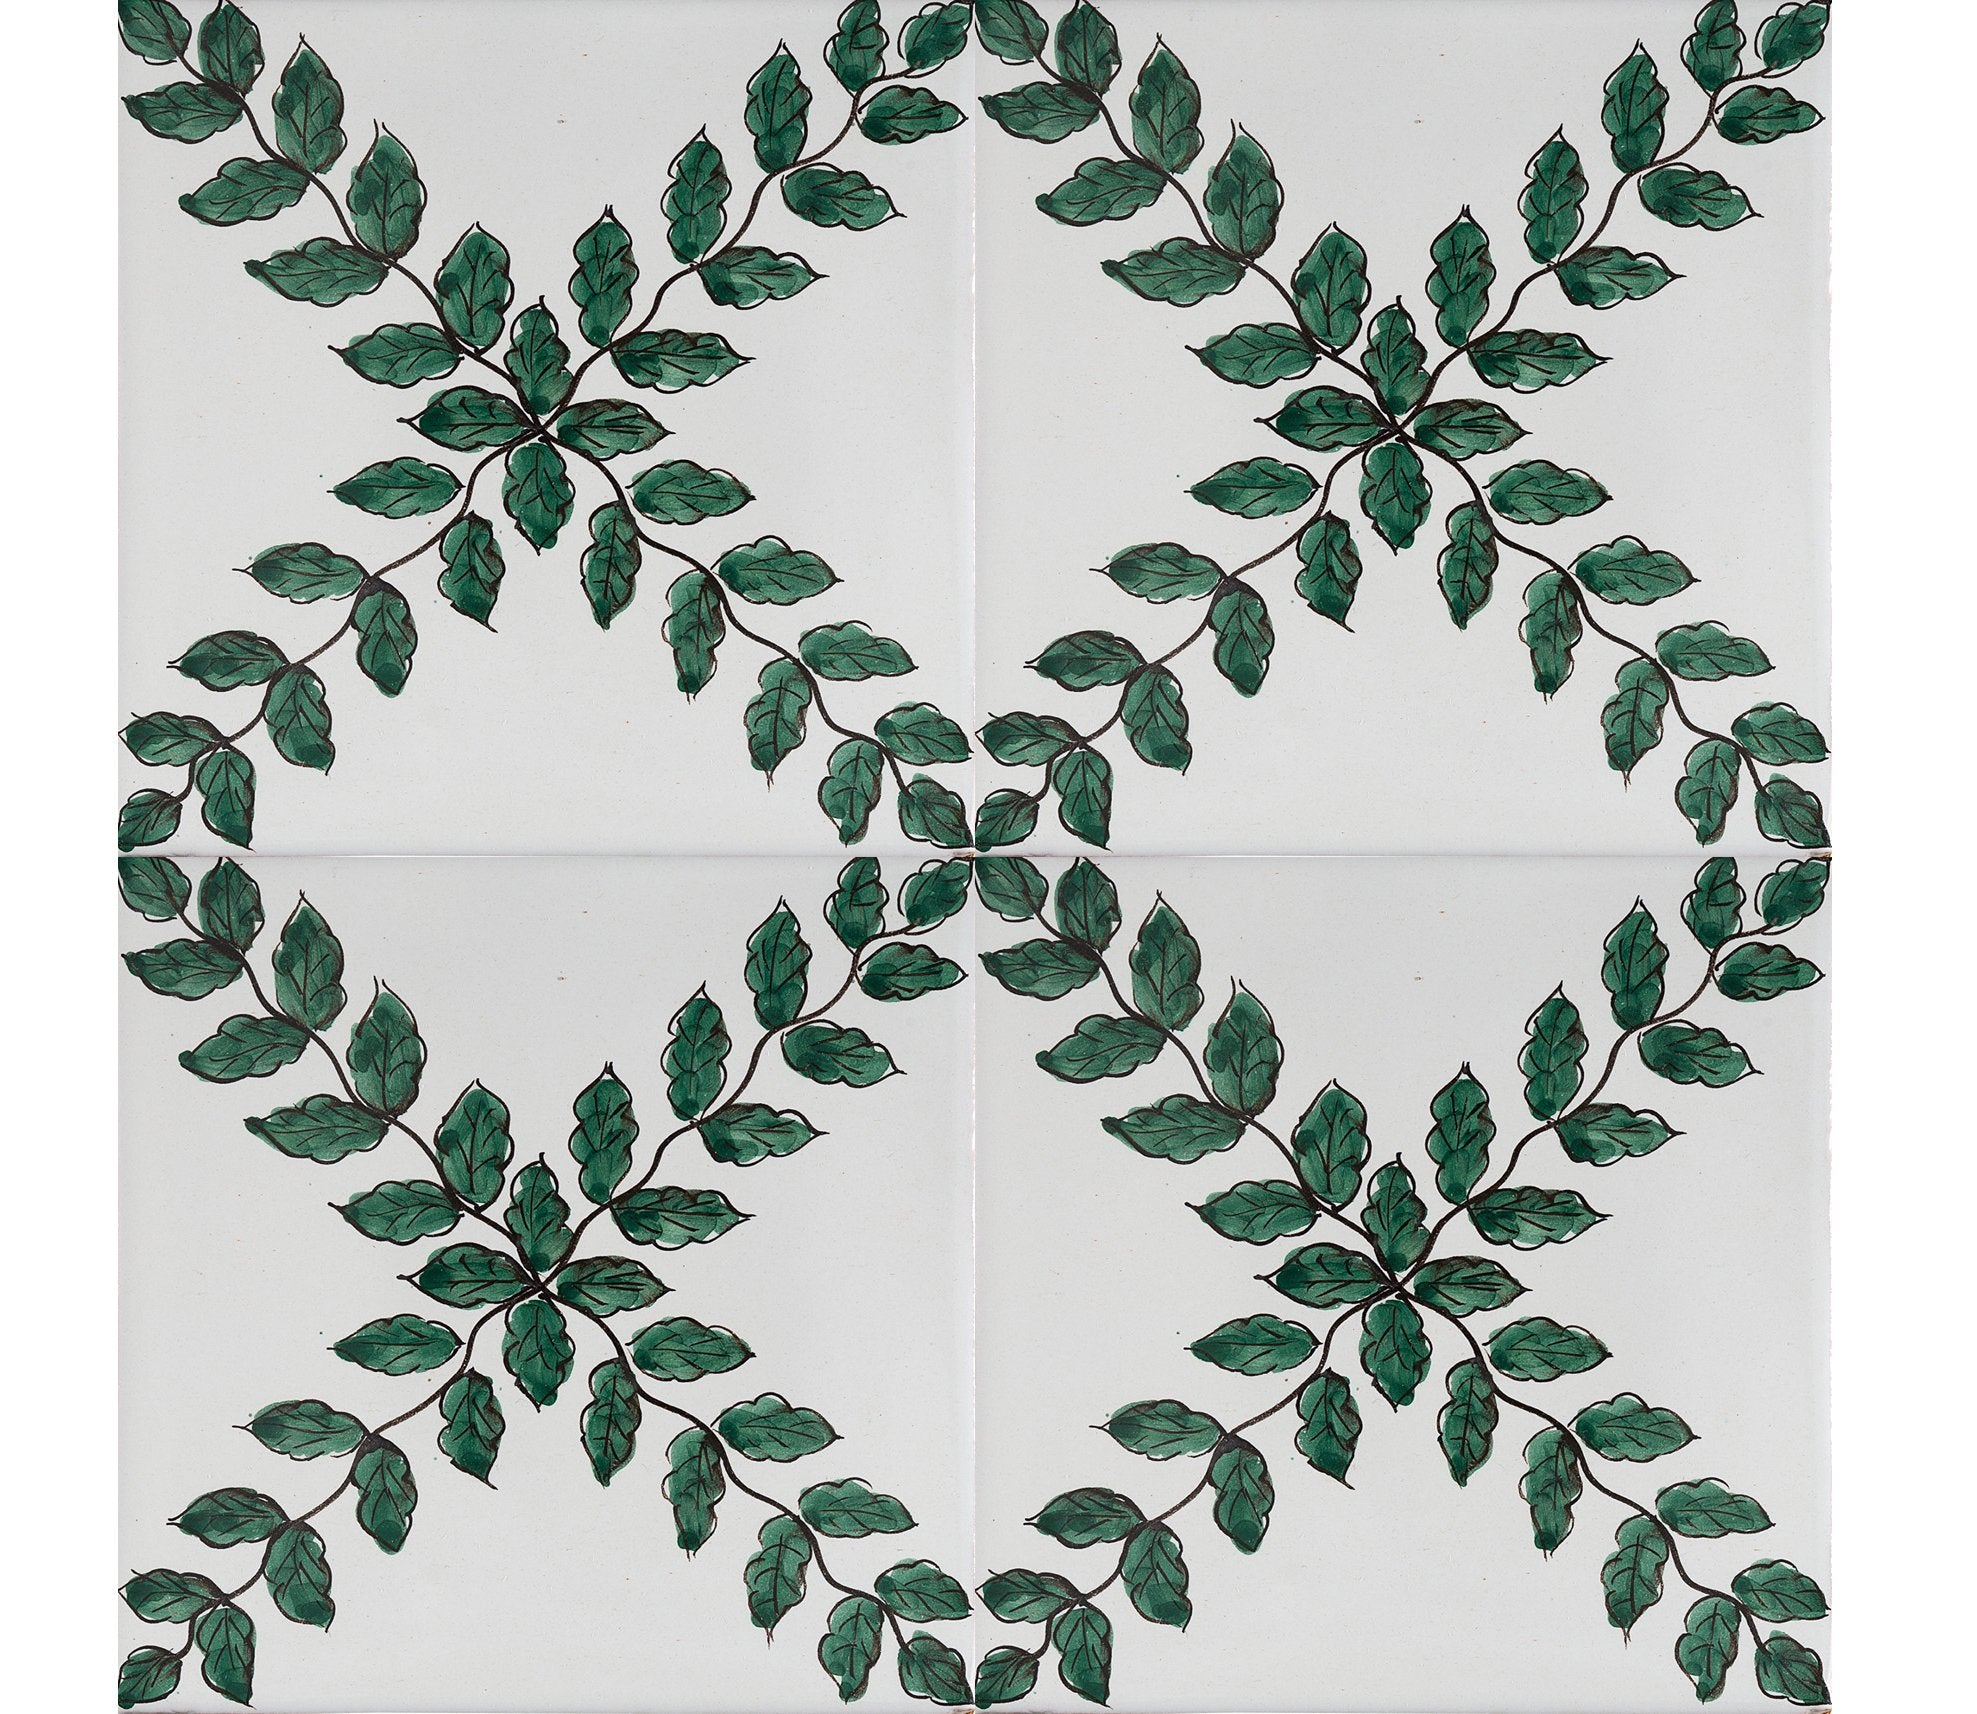 Series S Handpainted Tiles Product Image 17